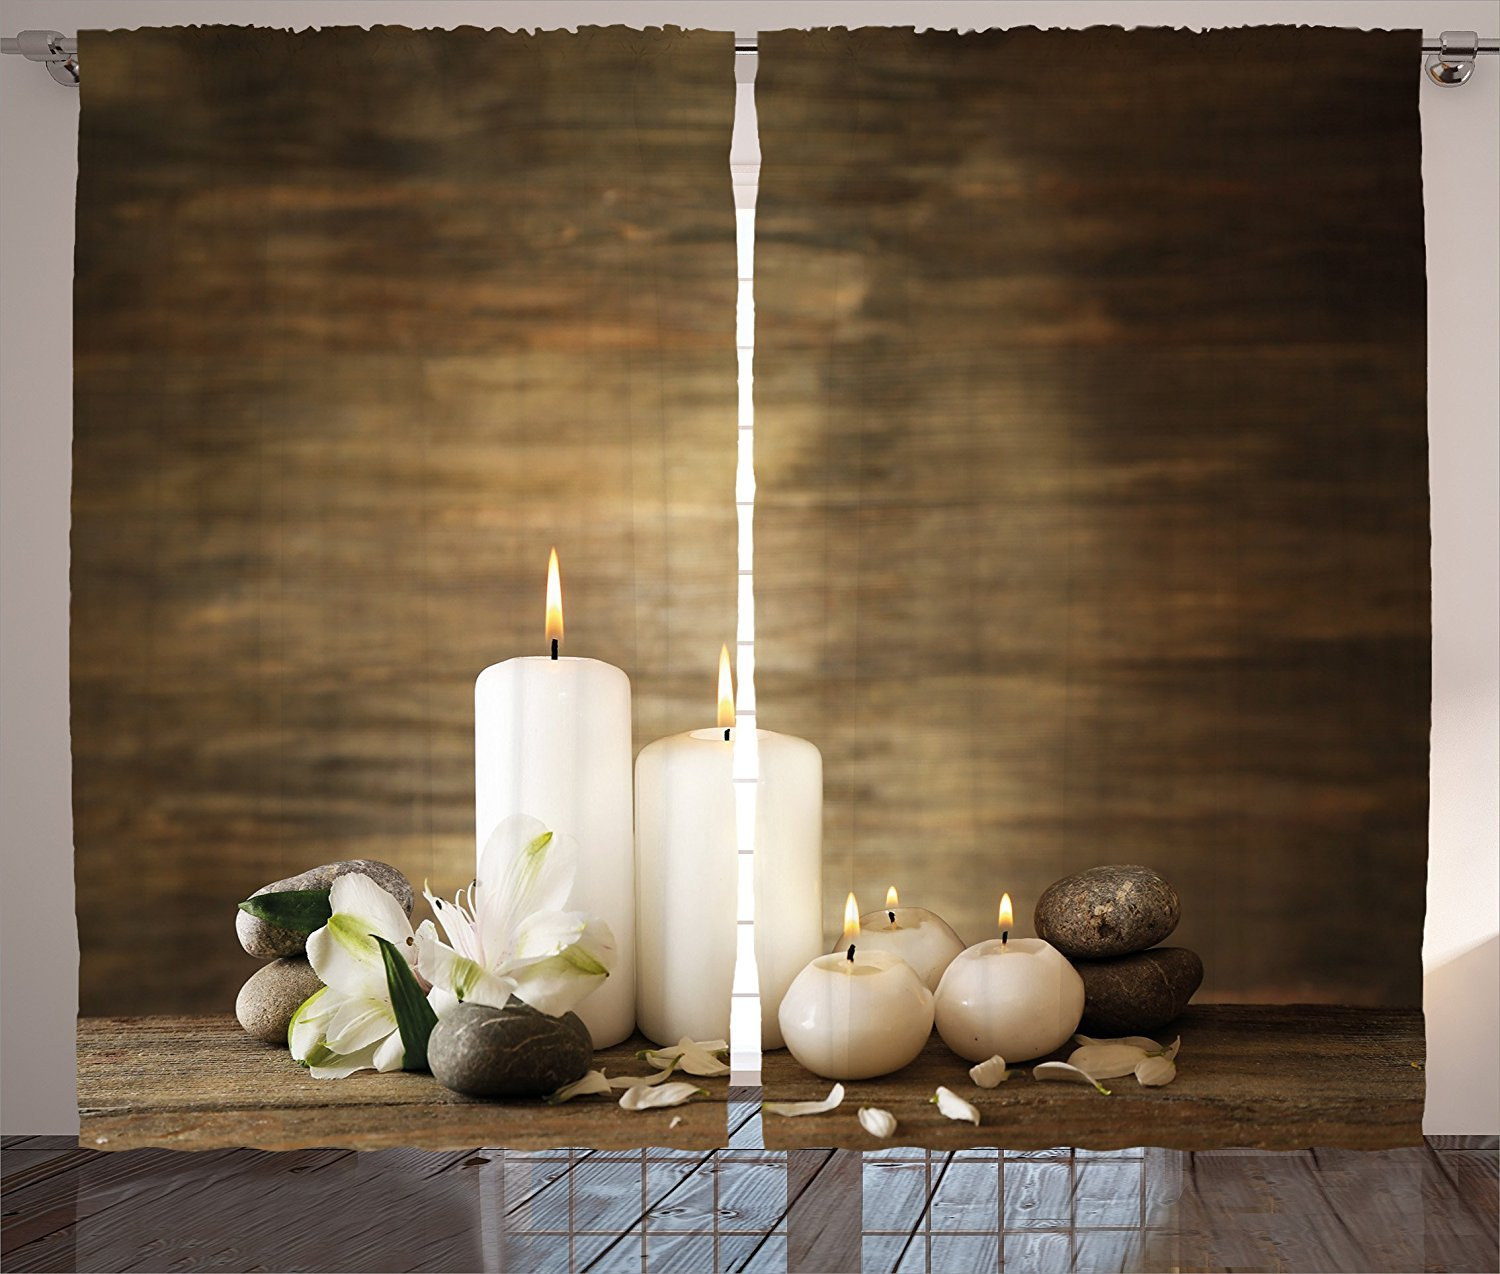 Spa Decor Curtains Composition of Pure Candles Wooden Background with Stones and Flower Petals Living Room Bedroom Window Drapes 2 Panel Set Brown and White